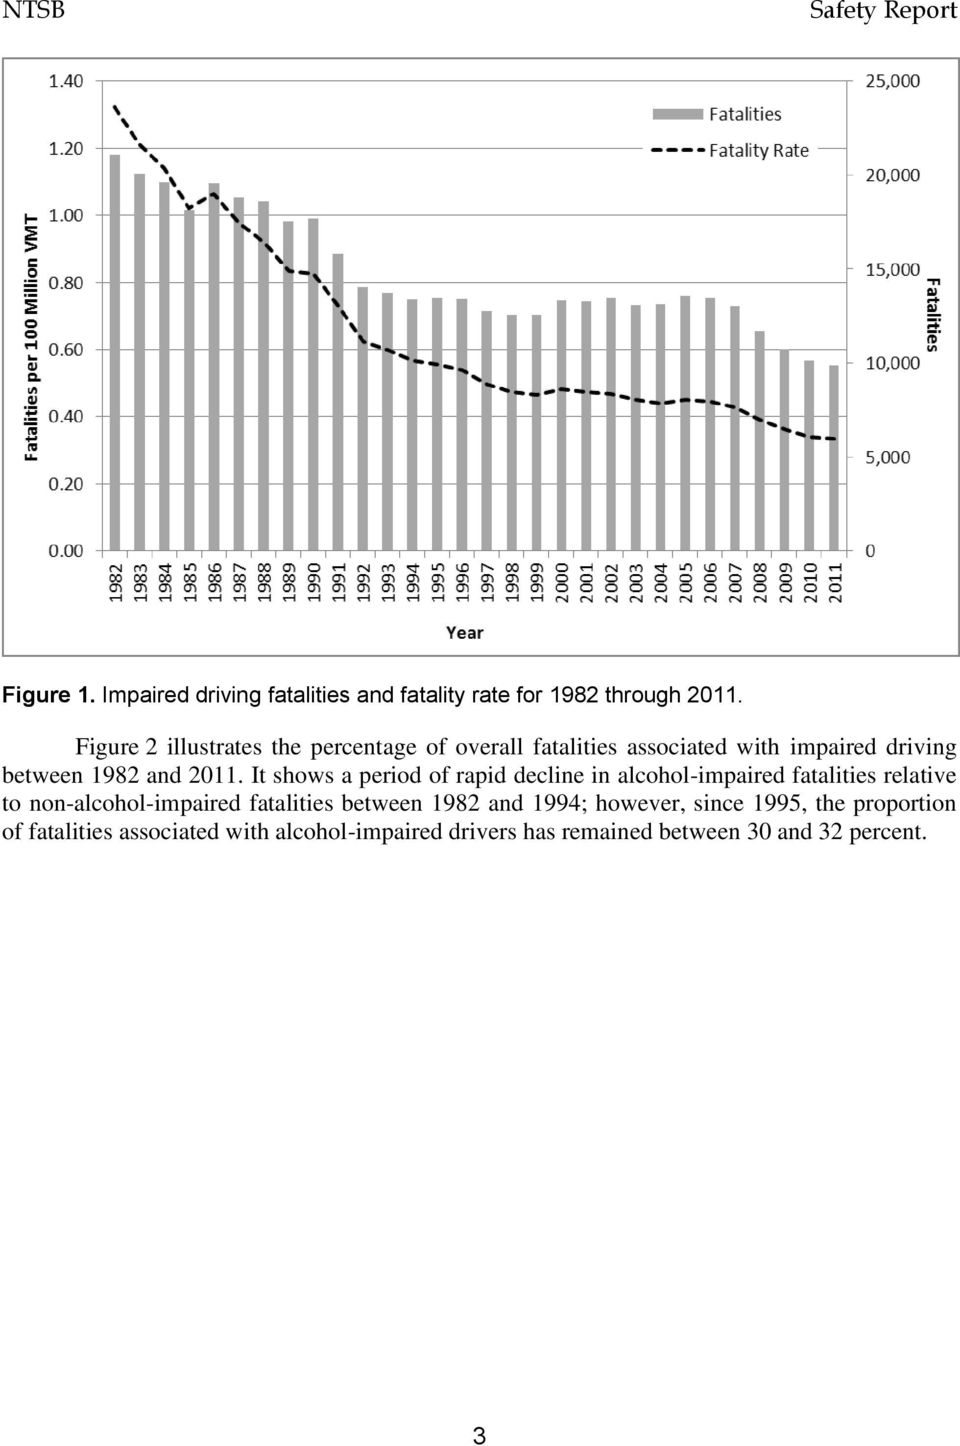 It shows a period of rapid decline in alcohol-impaired fatalities relative to non-alcohol-impaired fatalities